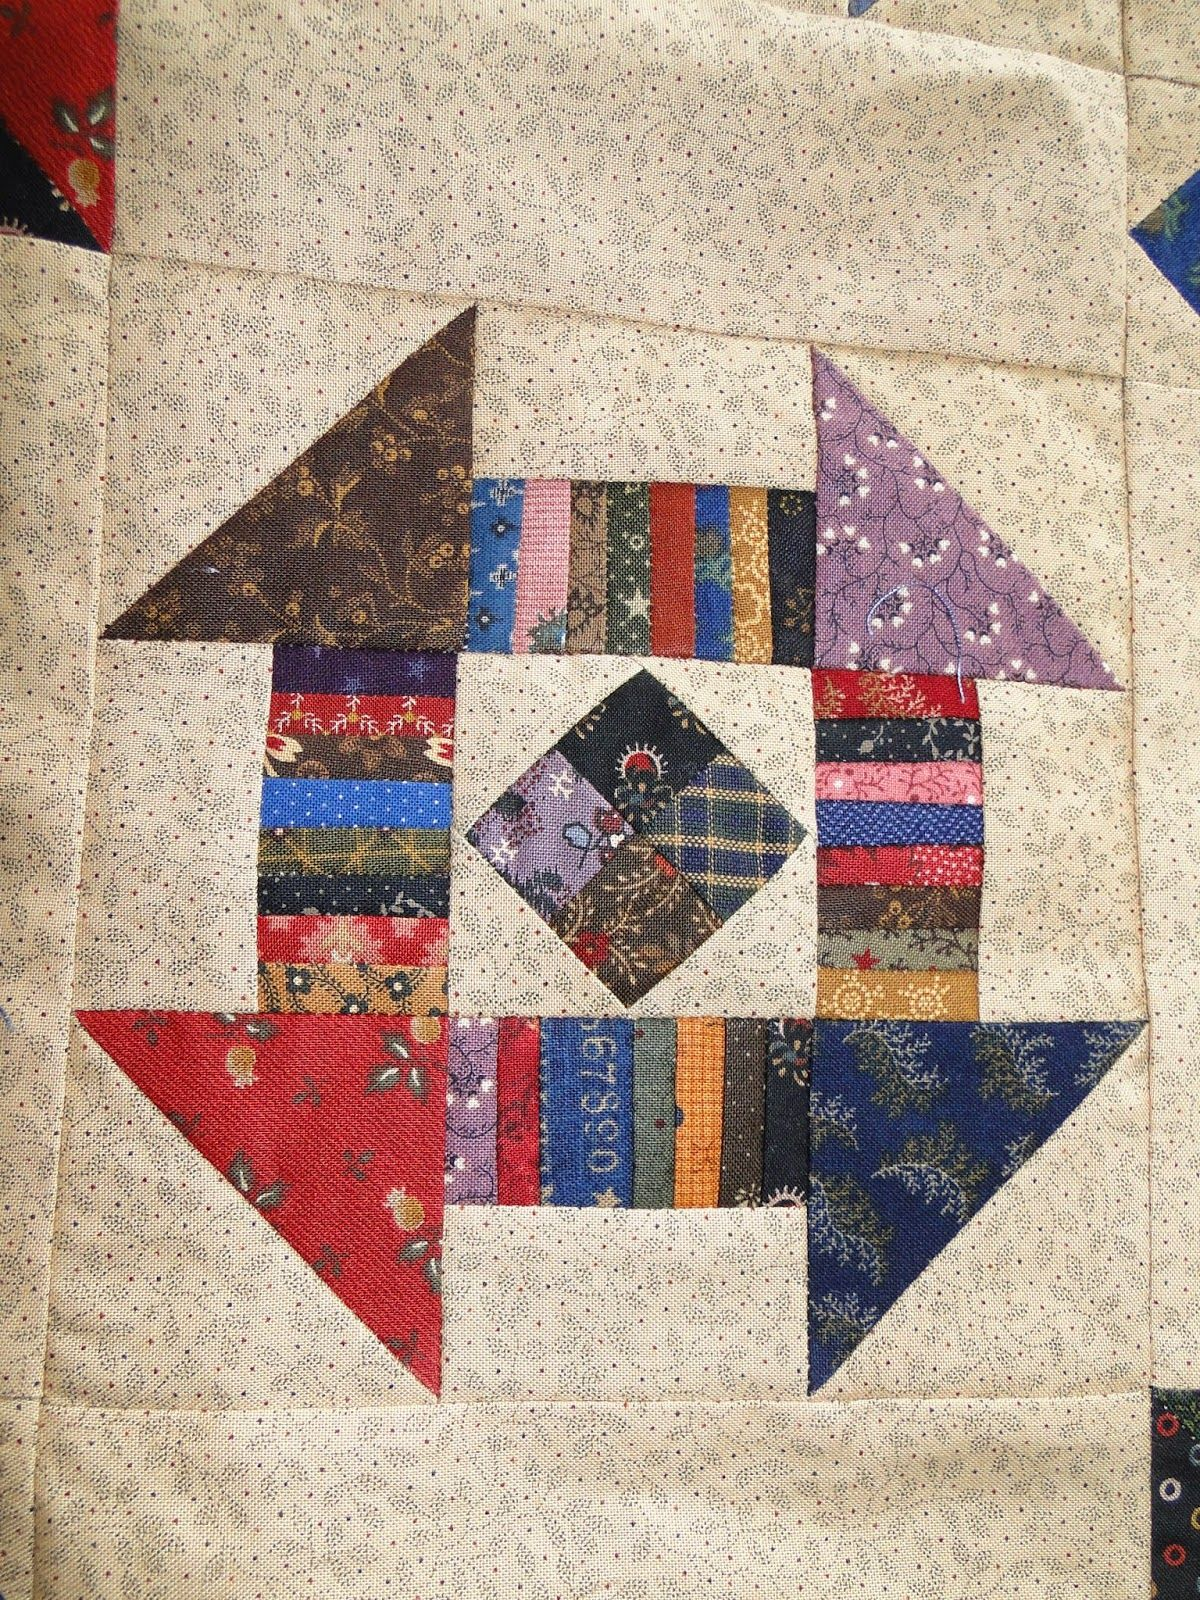 nursery there american little got a i space the could way again girl round quilt dreamy shots and what woodberry check for in gorgeous they quilting patchwork magazine be play wish out